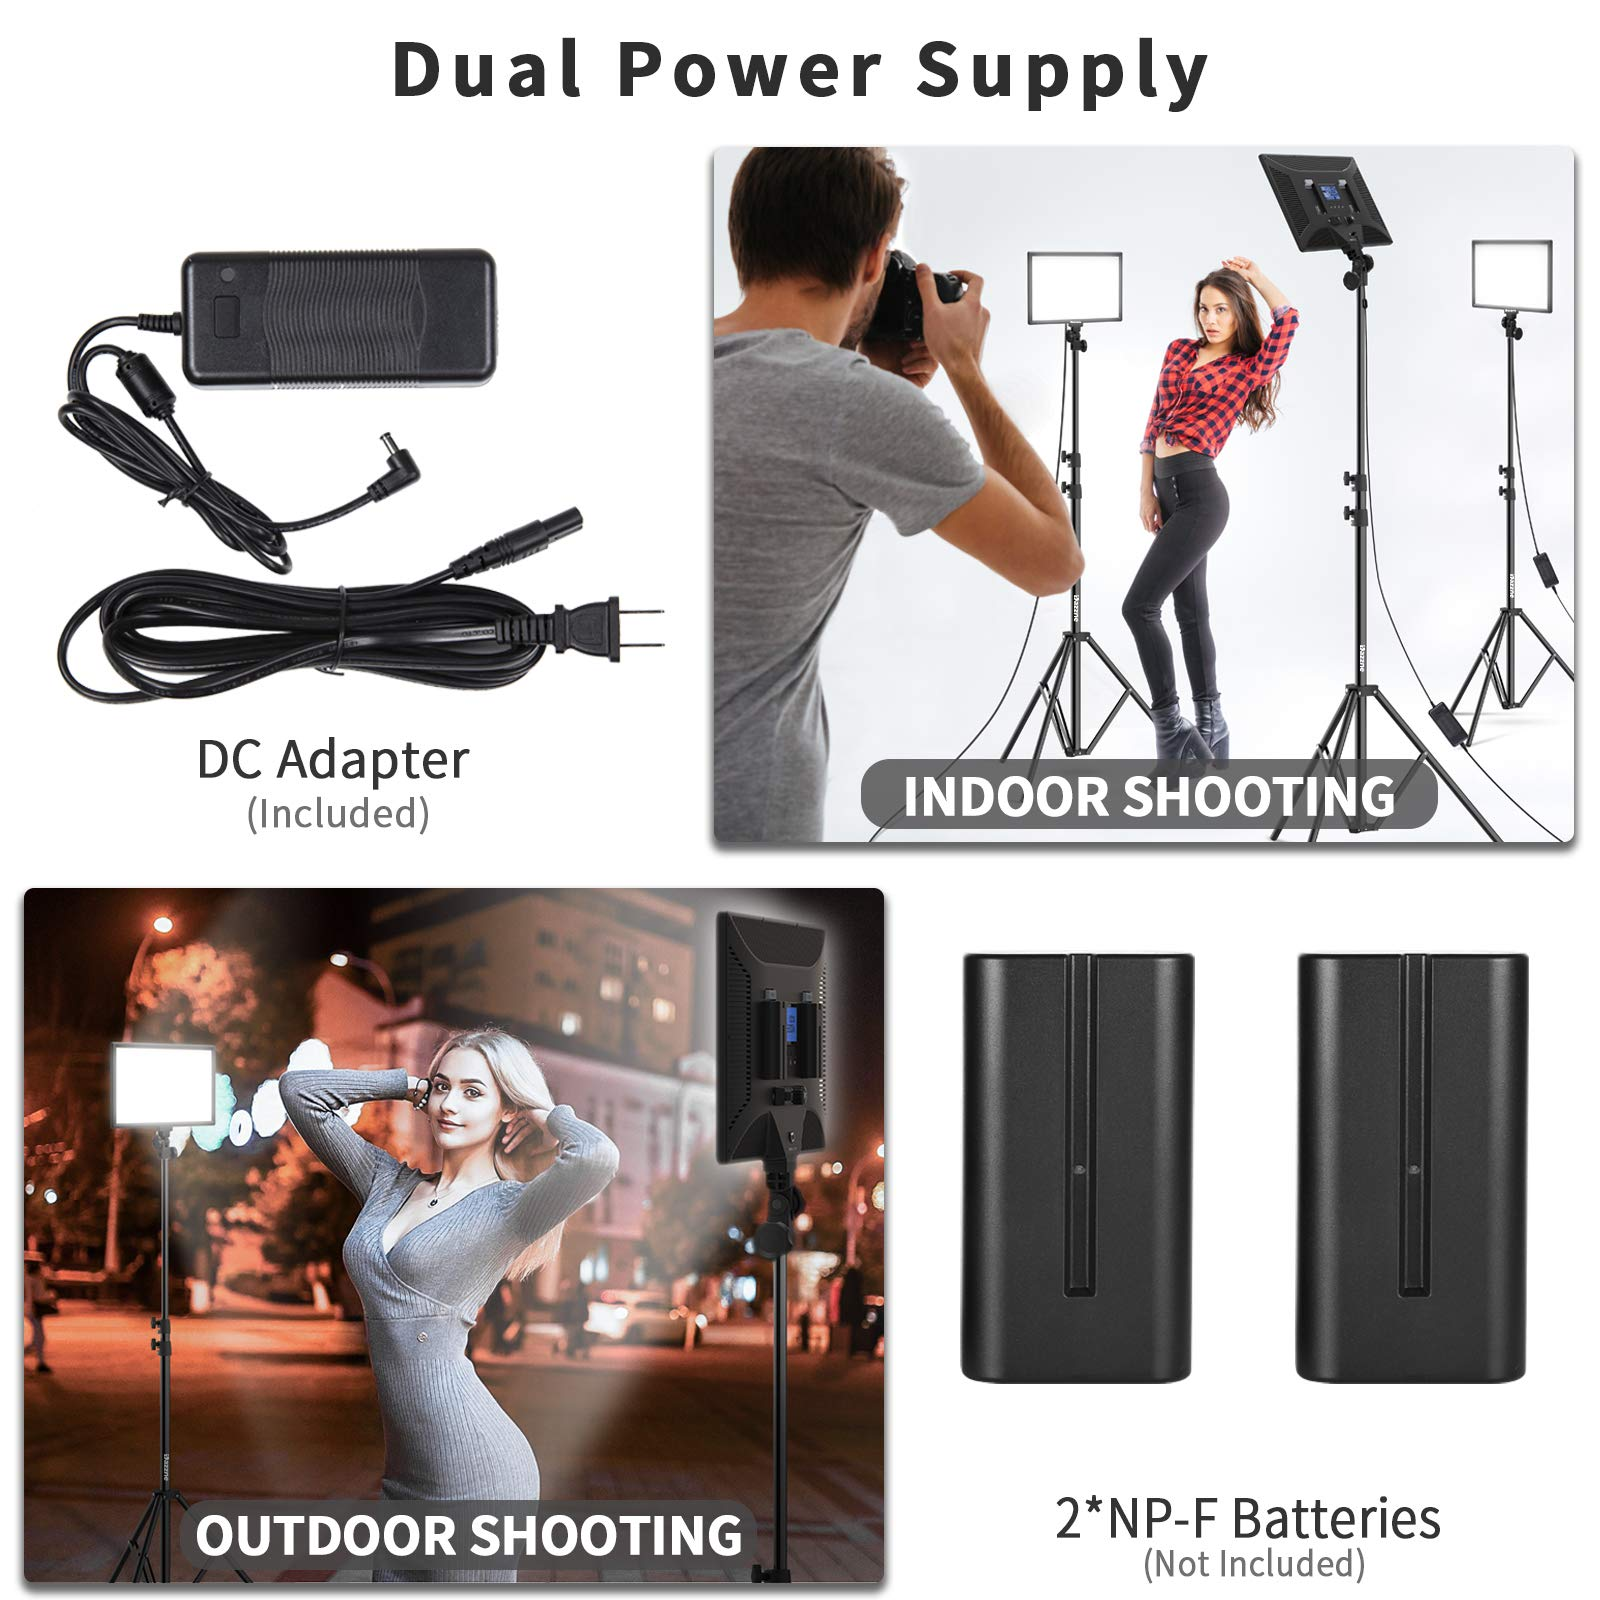 Bi-Color LED Video Light Stand Lighting Kit 3 Pack 15.4'' Large Panel 3000K-5800K 45W 4800LM Dimmable 1-100% Brightness Soft Light for YouTube Game Video Shooting Live Stream Photography Lighting by Dazzne (Image #3)